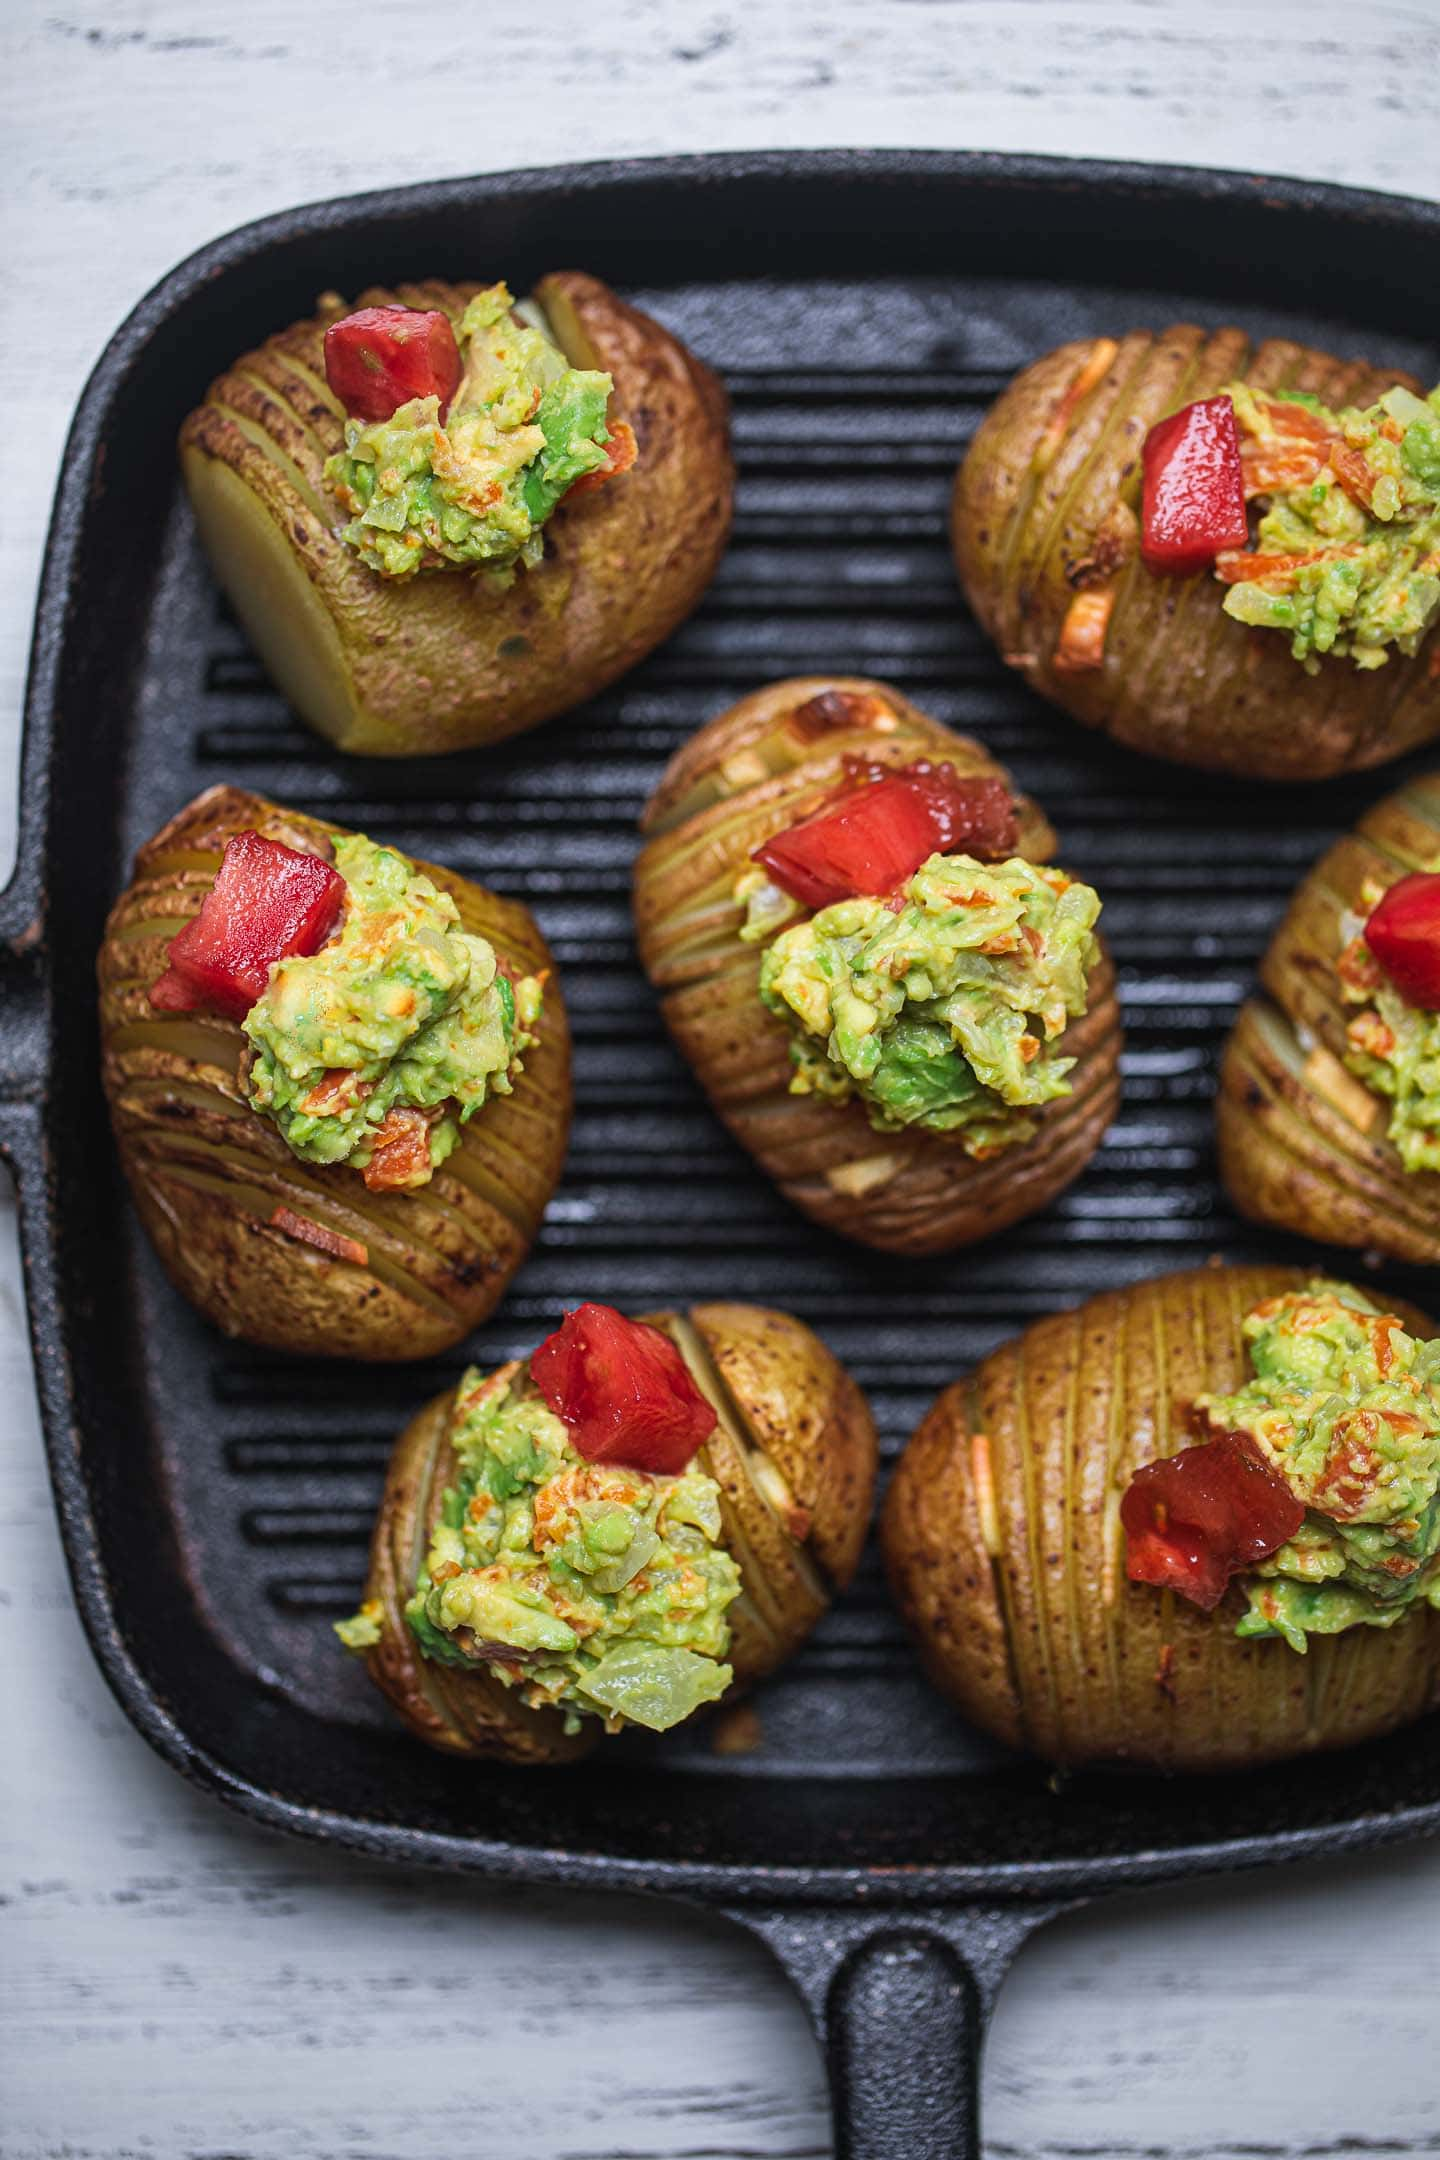 Garlic hasselback potatoes with avocado sauce in a skillet